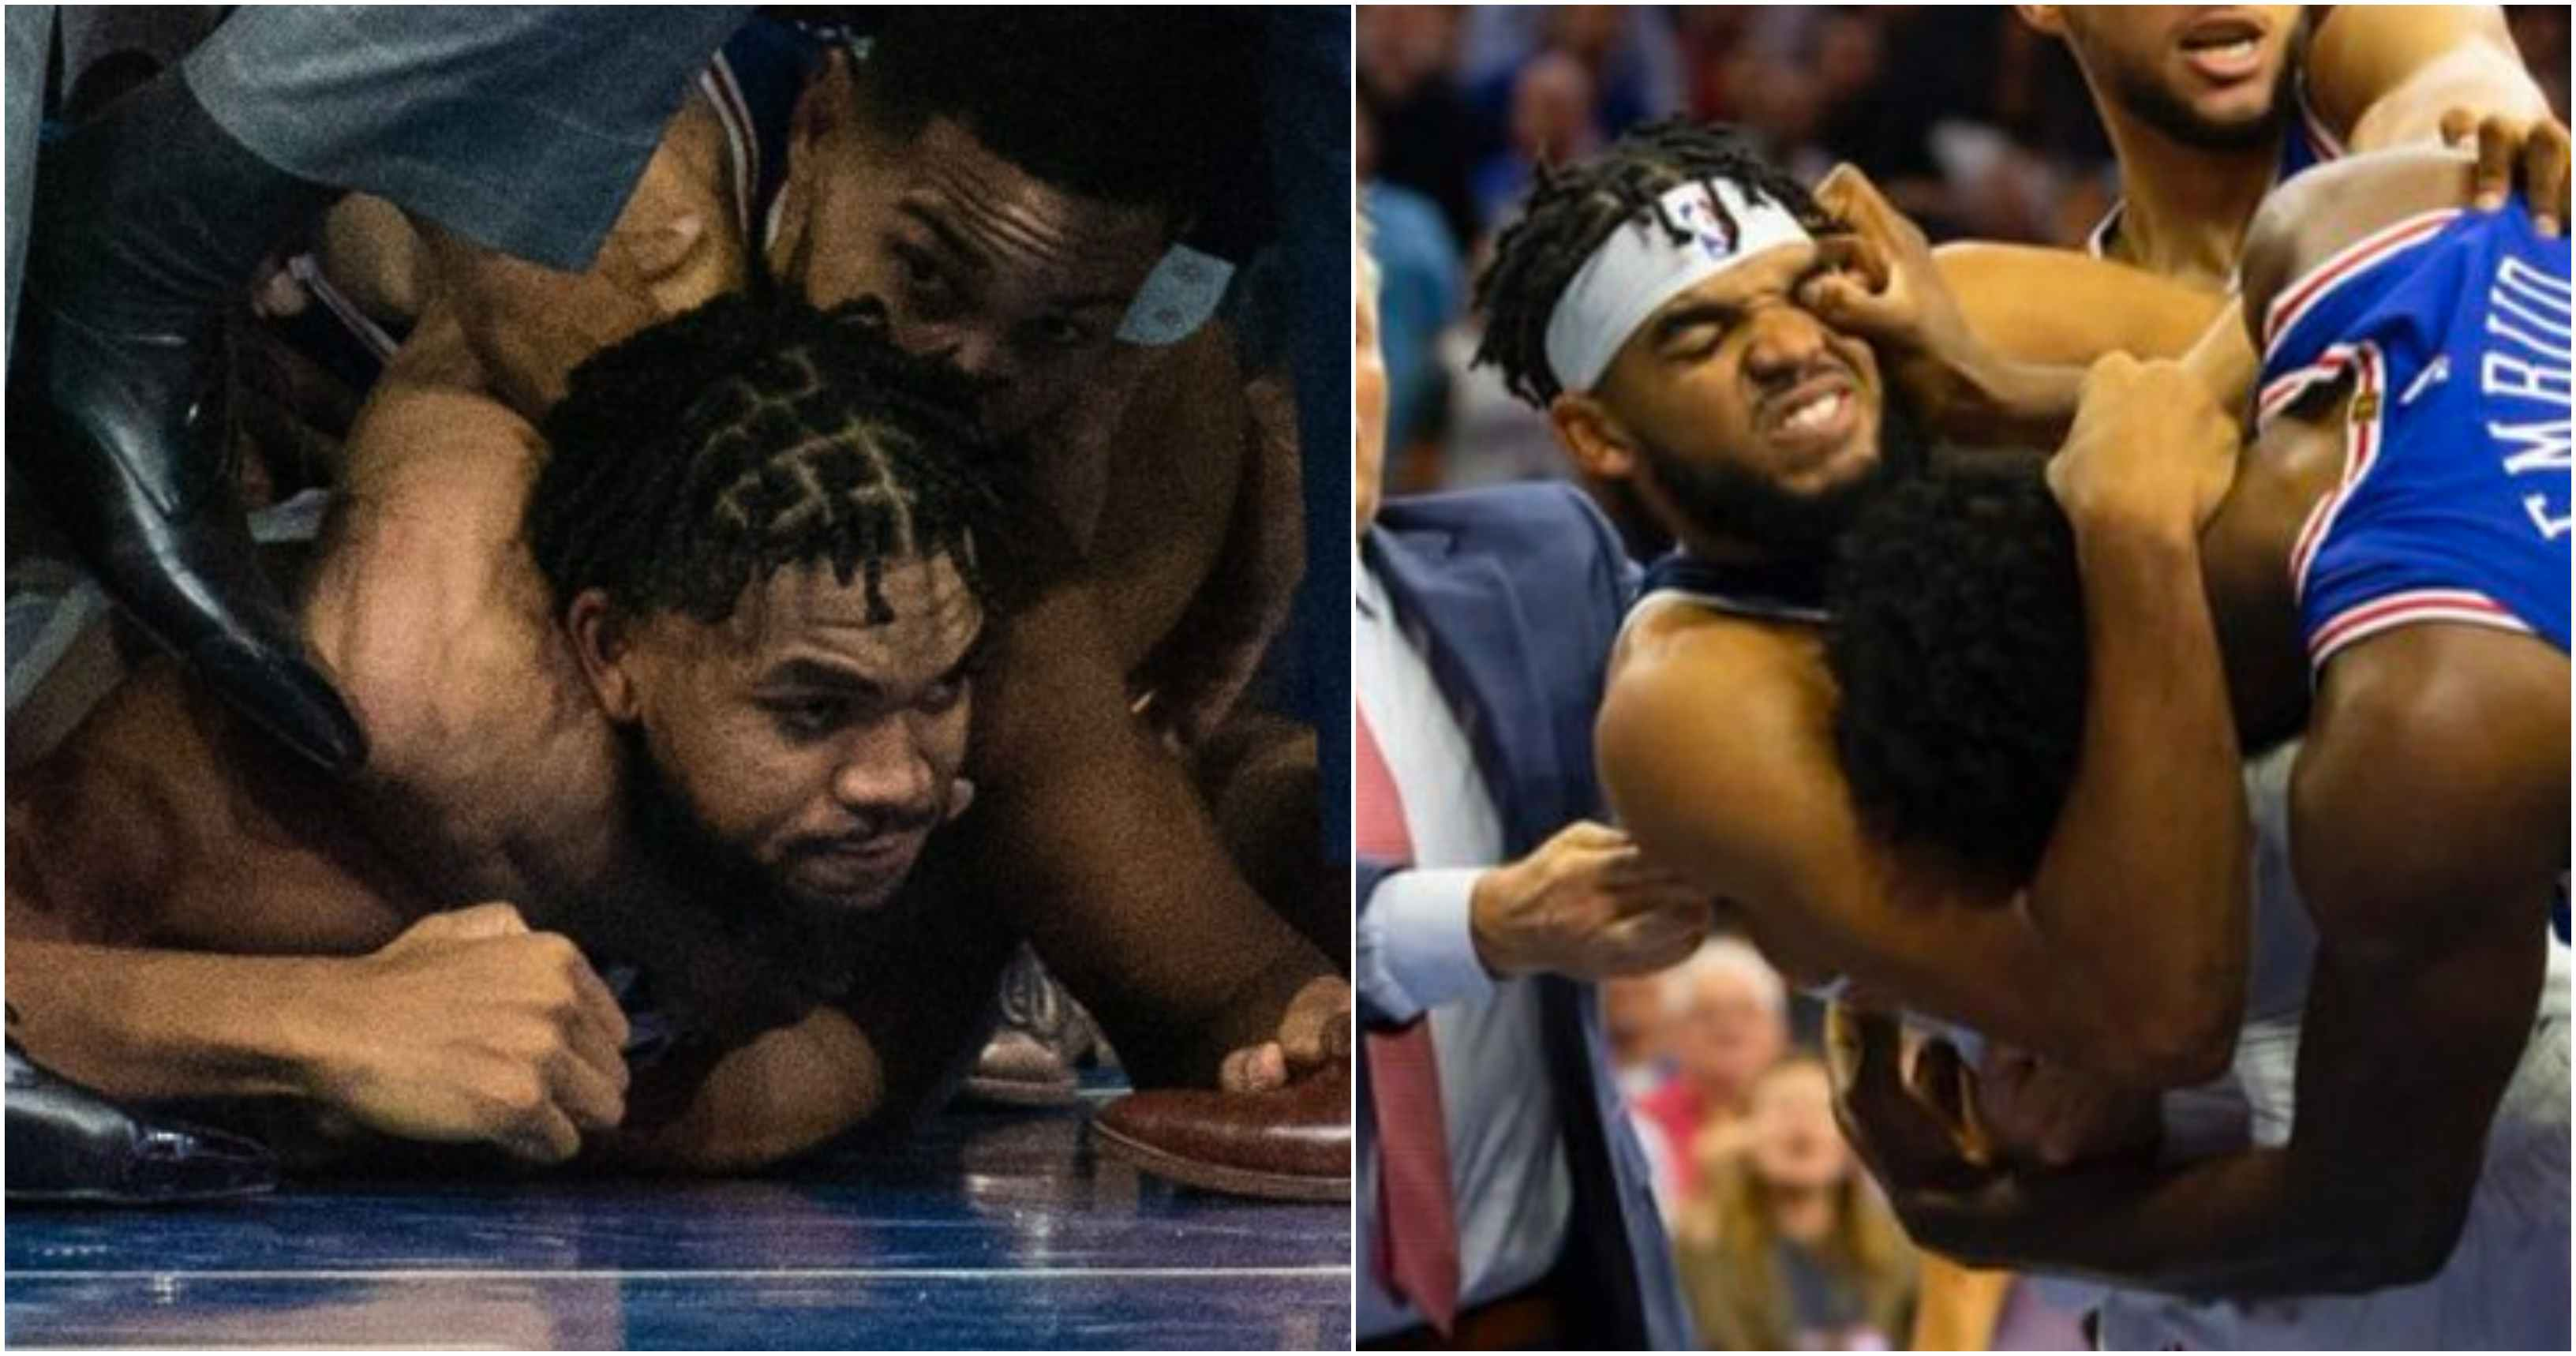 NBA player chokes out his opponent with Rear Naked Choke inside the court - NBA